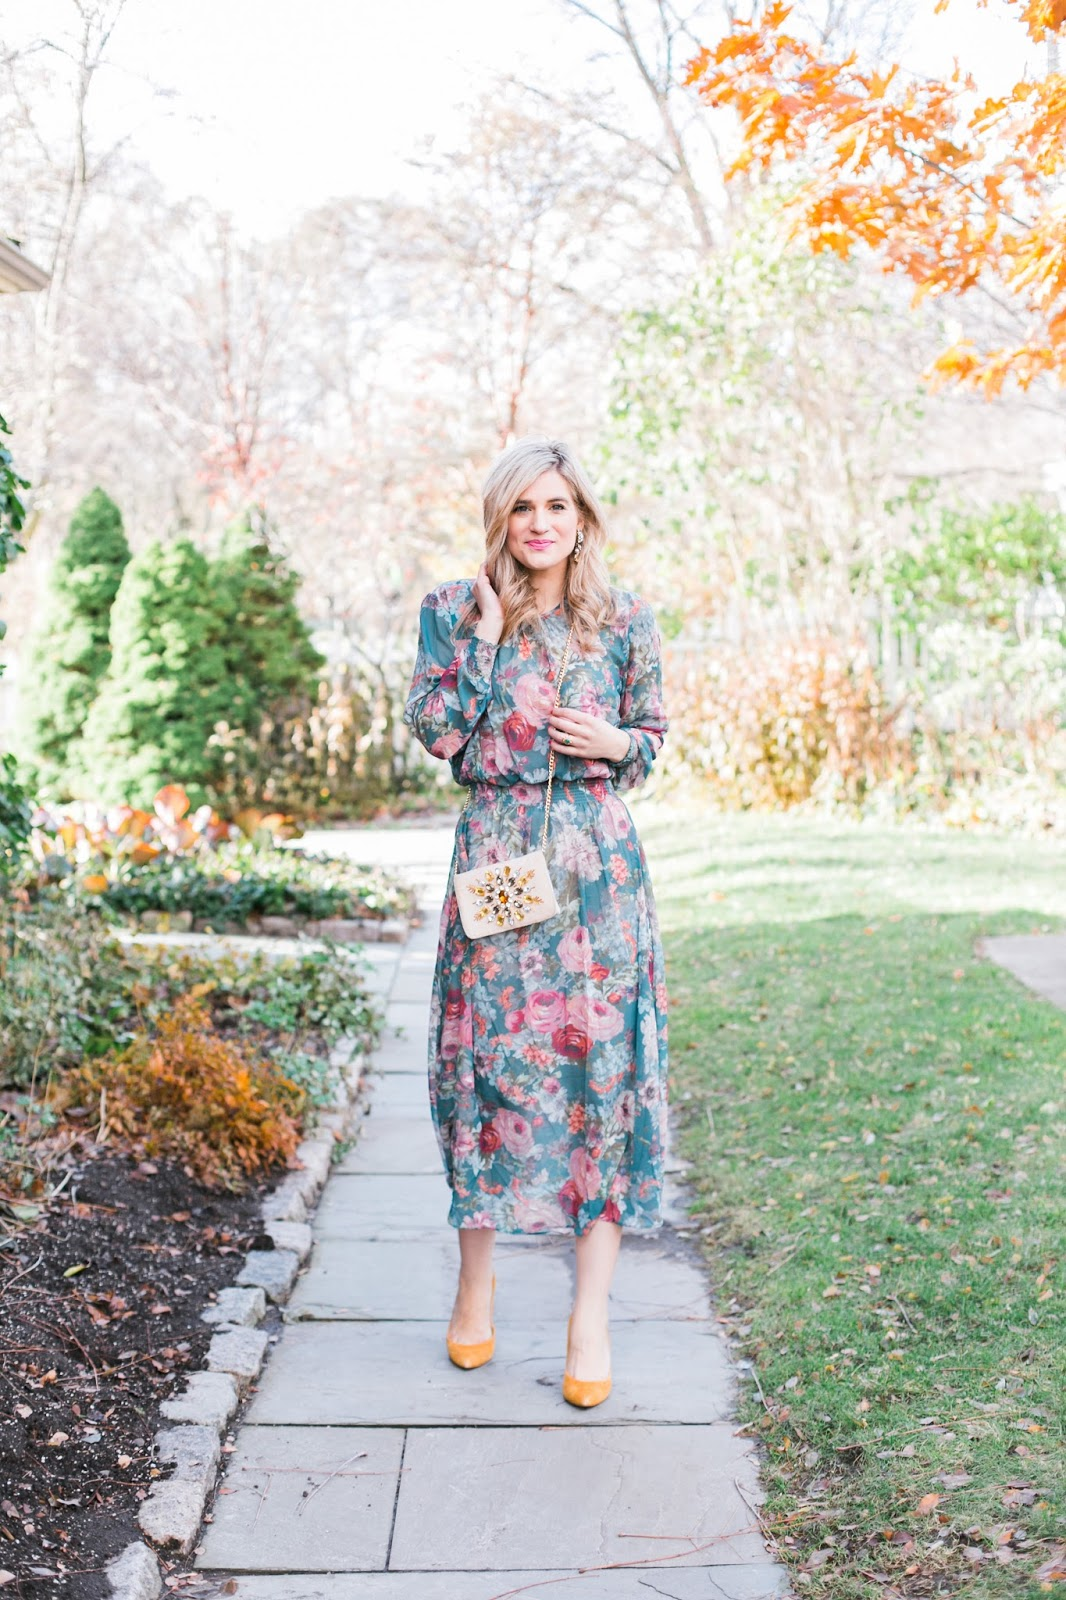 Bijuleni - What To Wear To a Fall Wedding - Elegant Floral Green Midi Dress